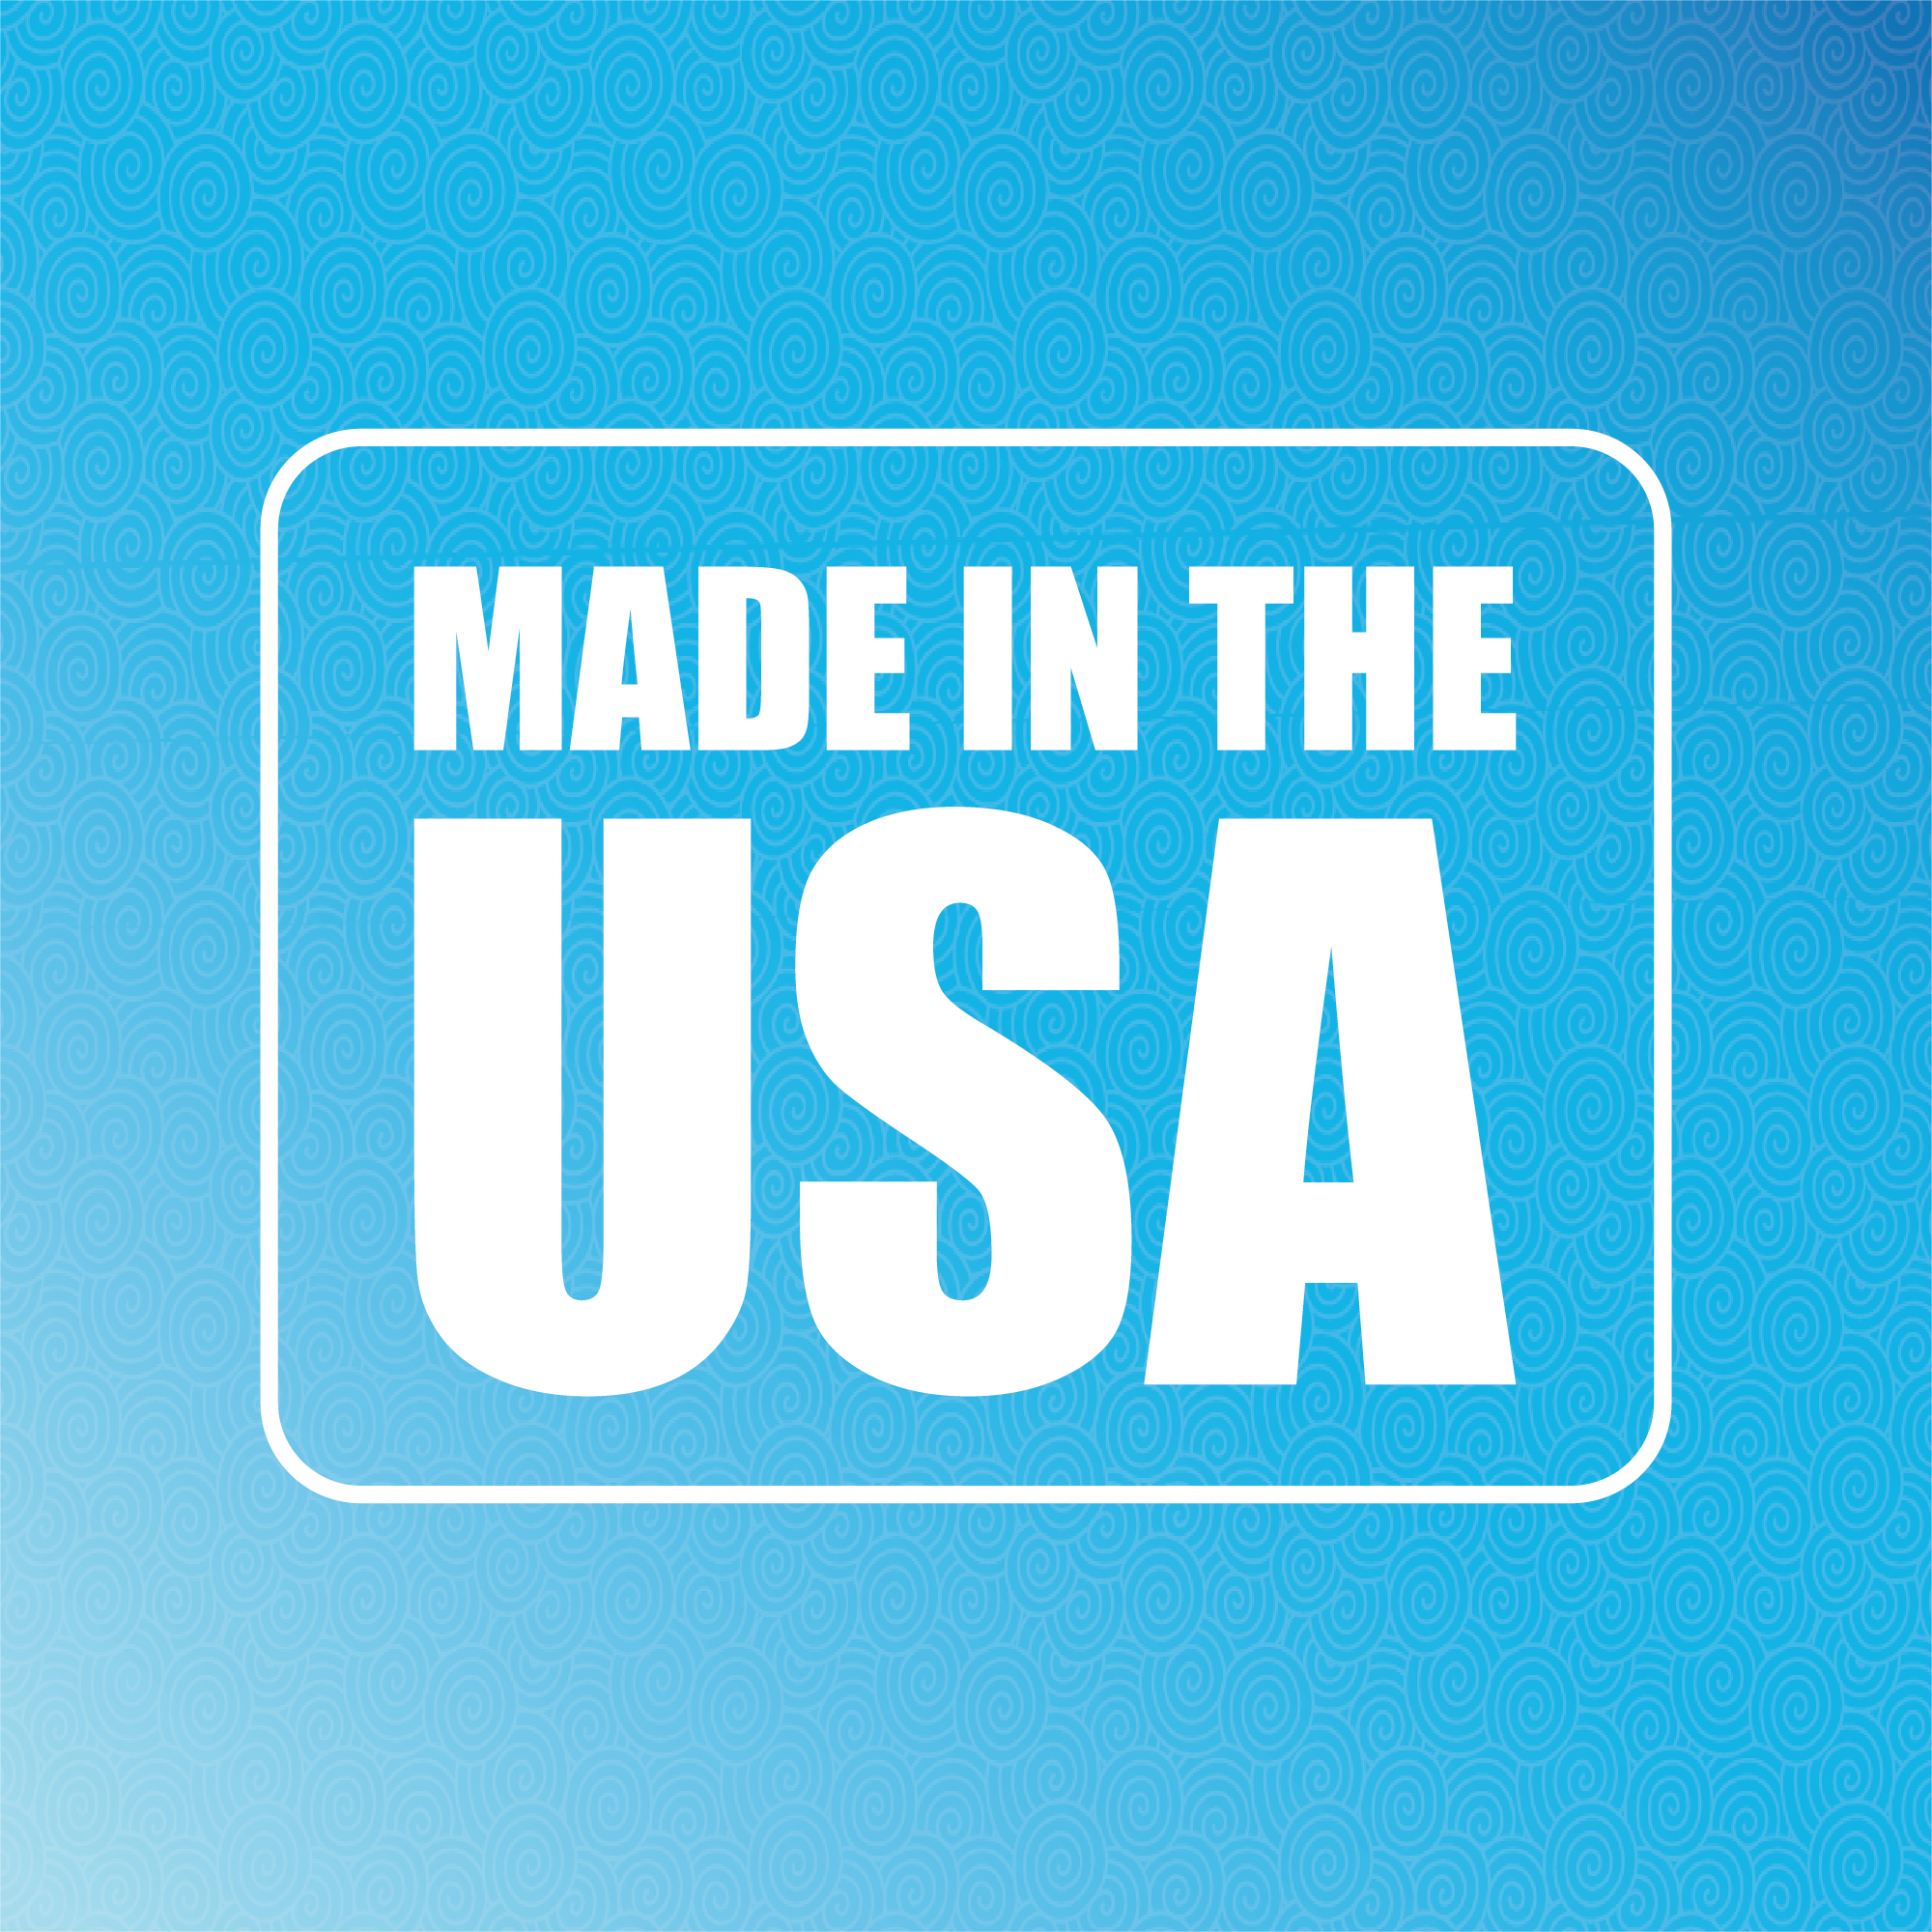 All Unique Pet Care products are proudly made inside the USA. All Unique Pet Care products are proudly made inside the USA. Keep your home odor and stain free with American Made solutions.